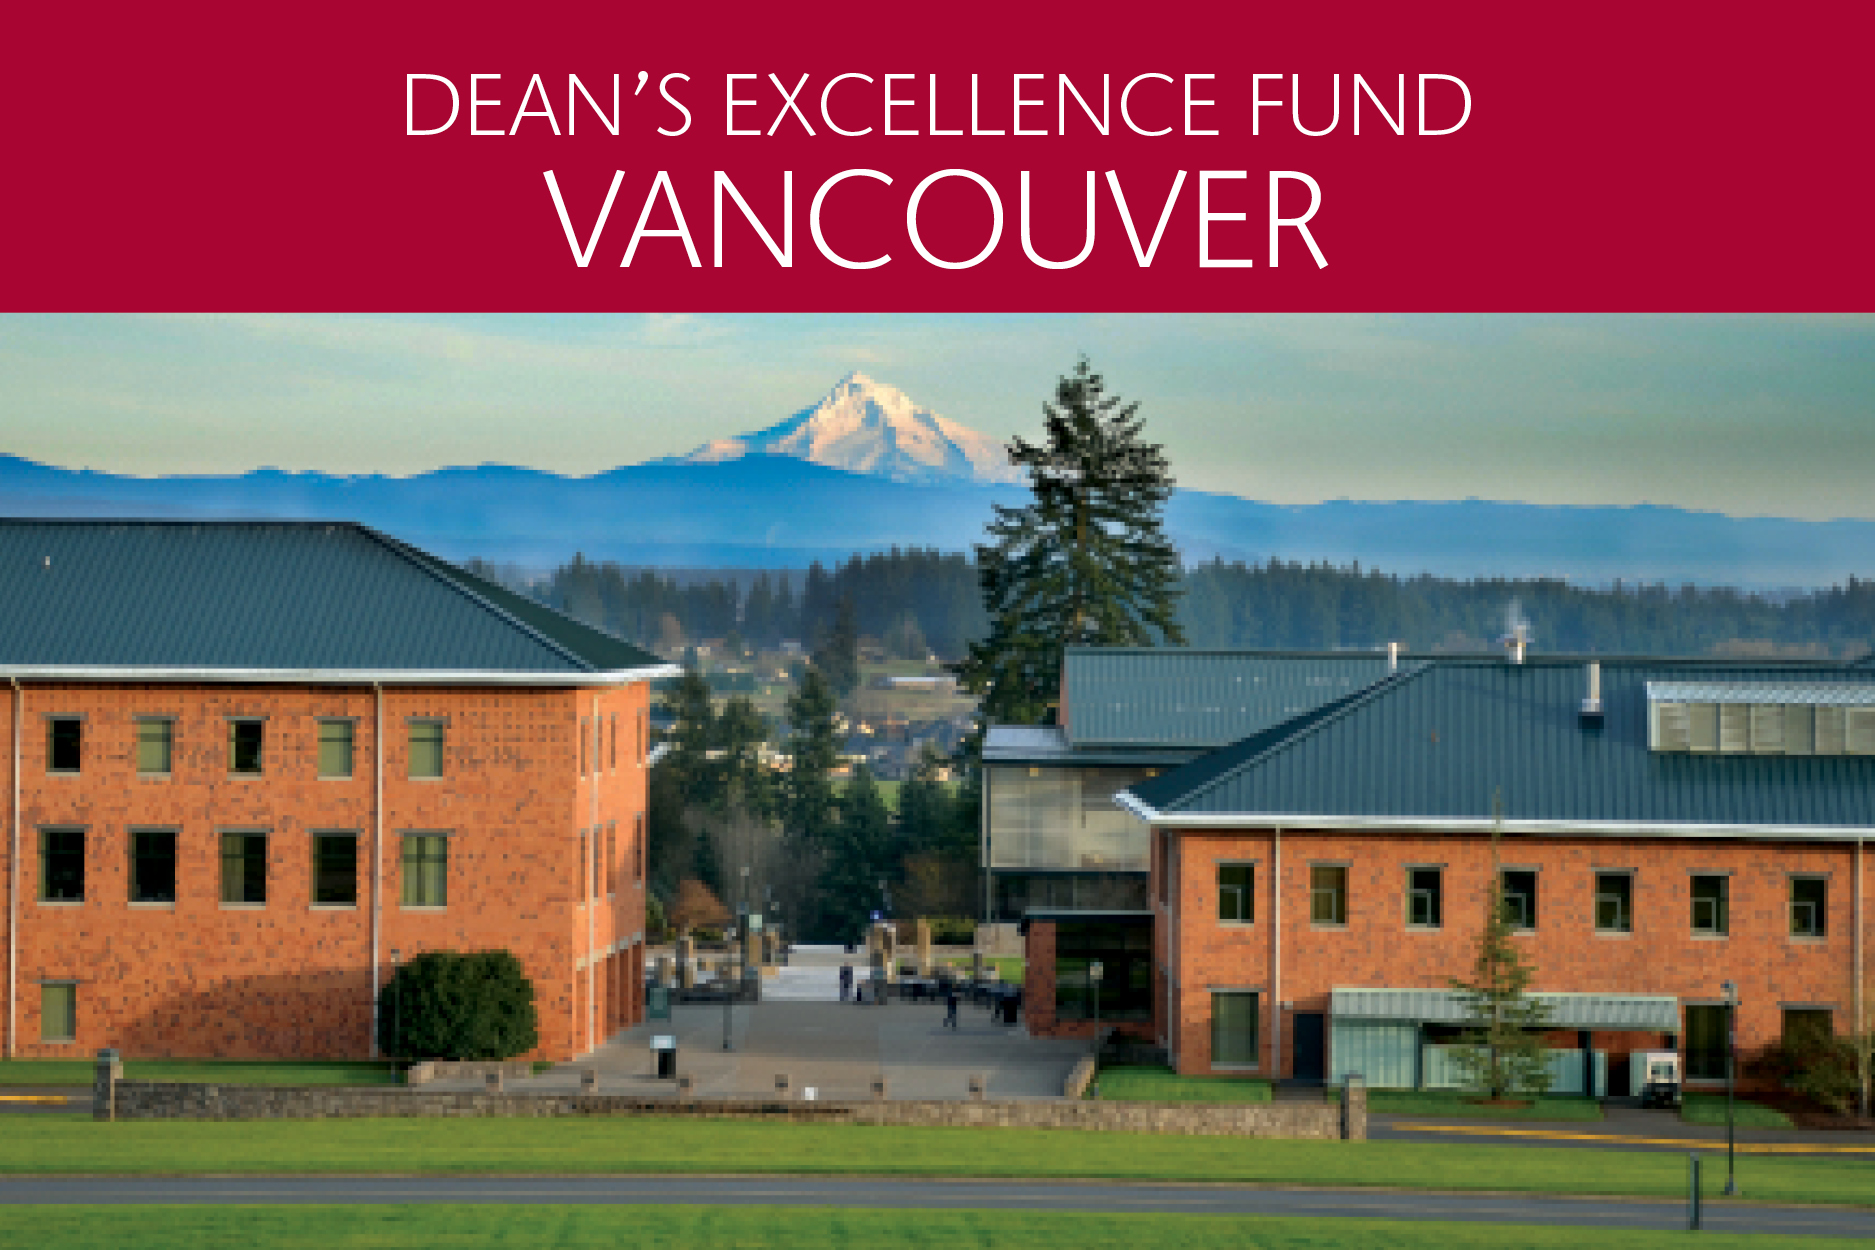 Dean's Excellence Fund Vancouver